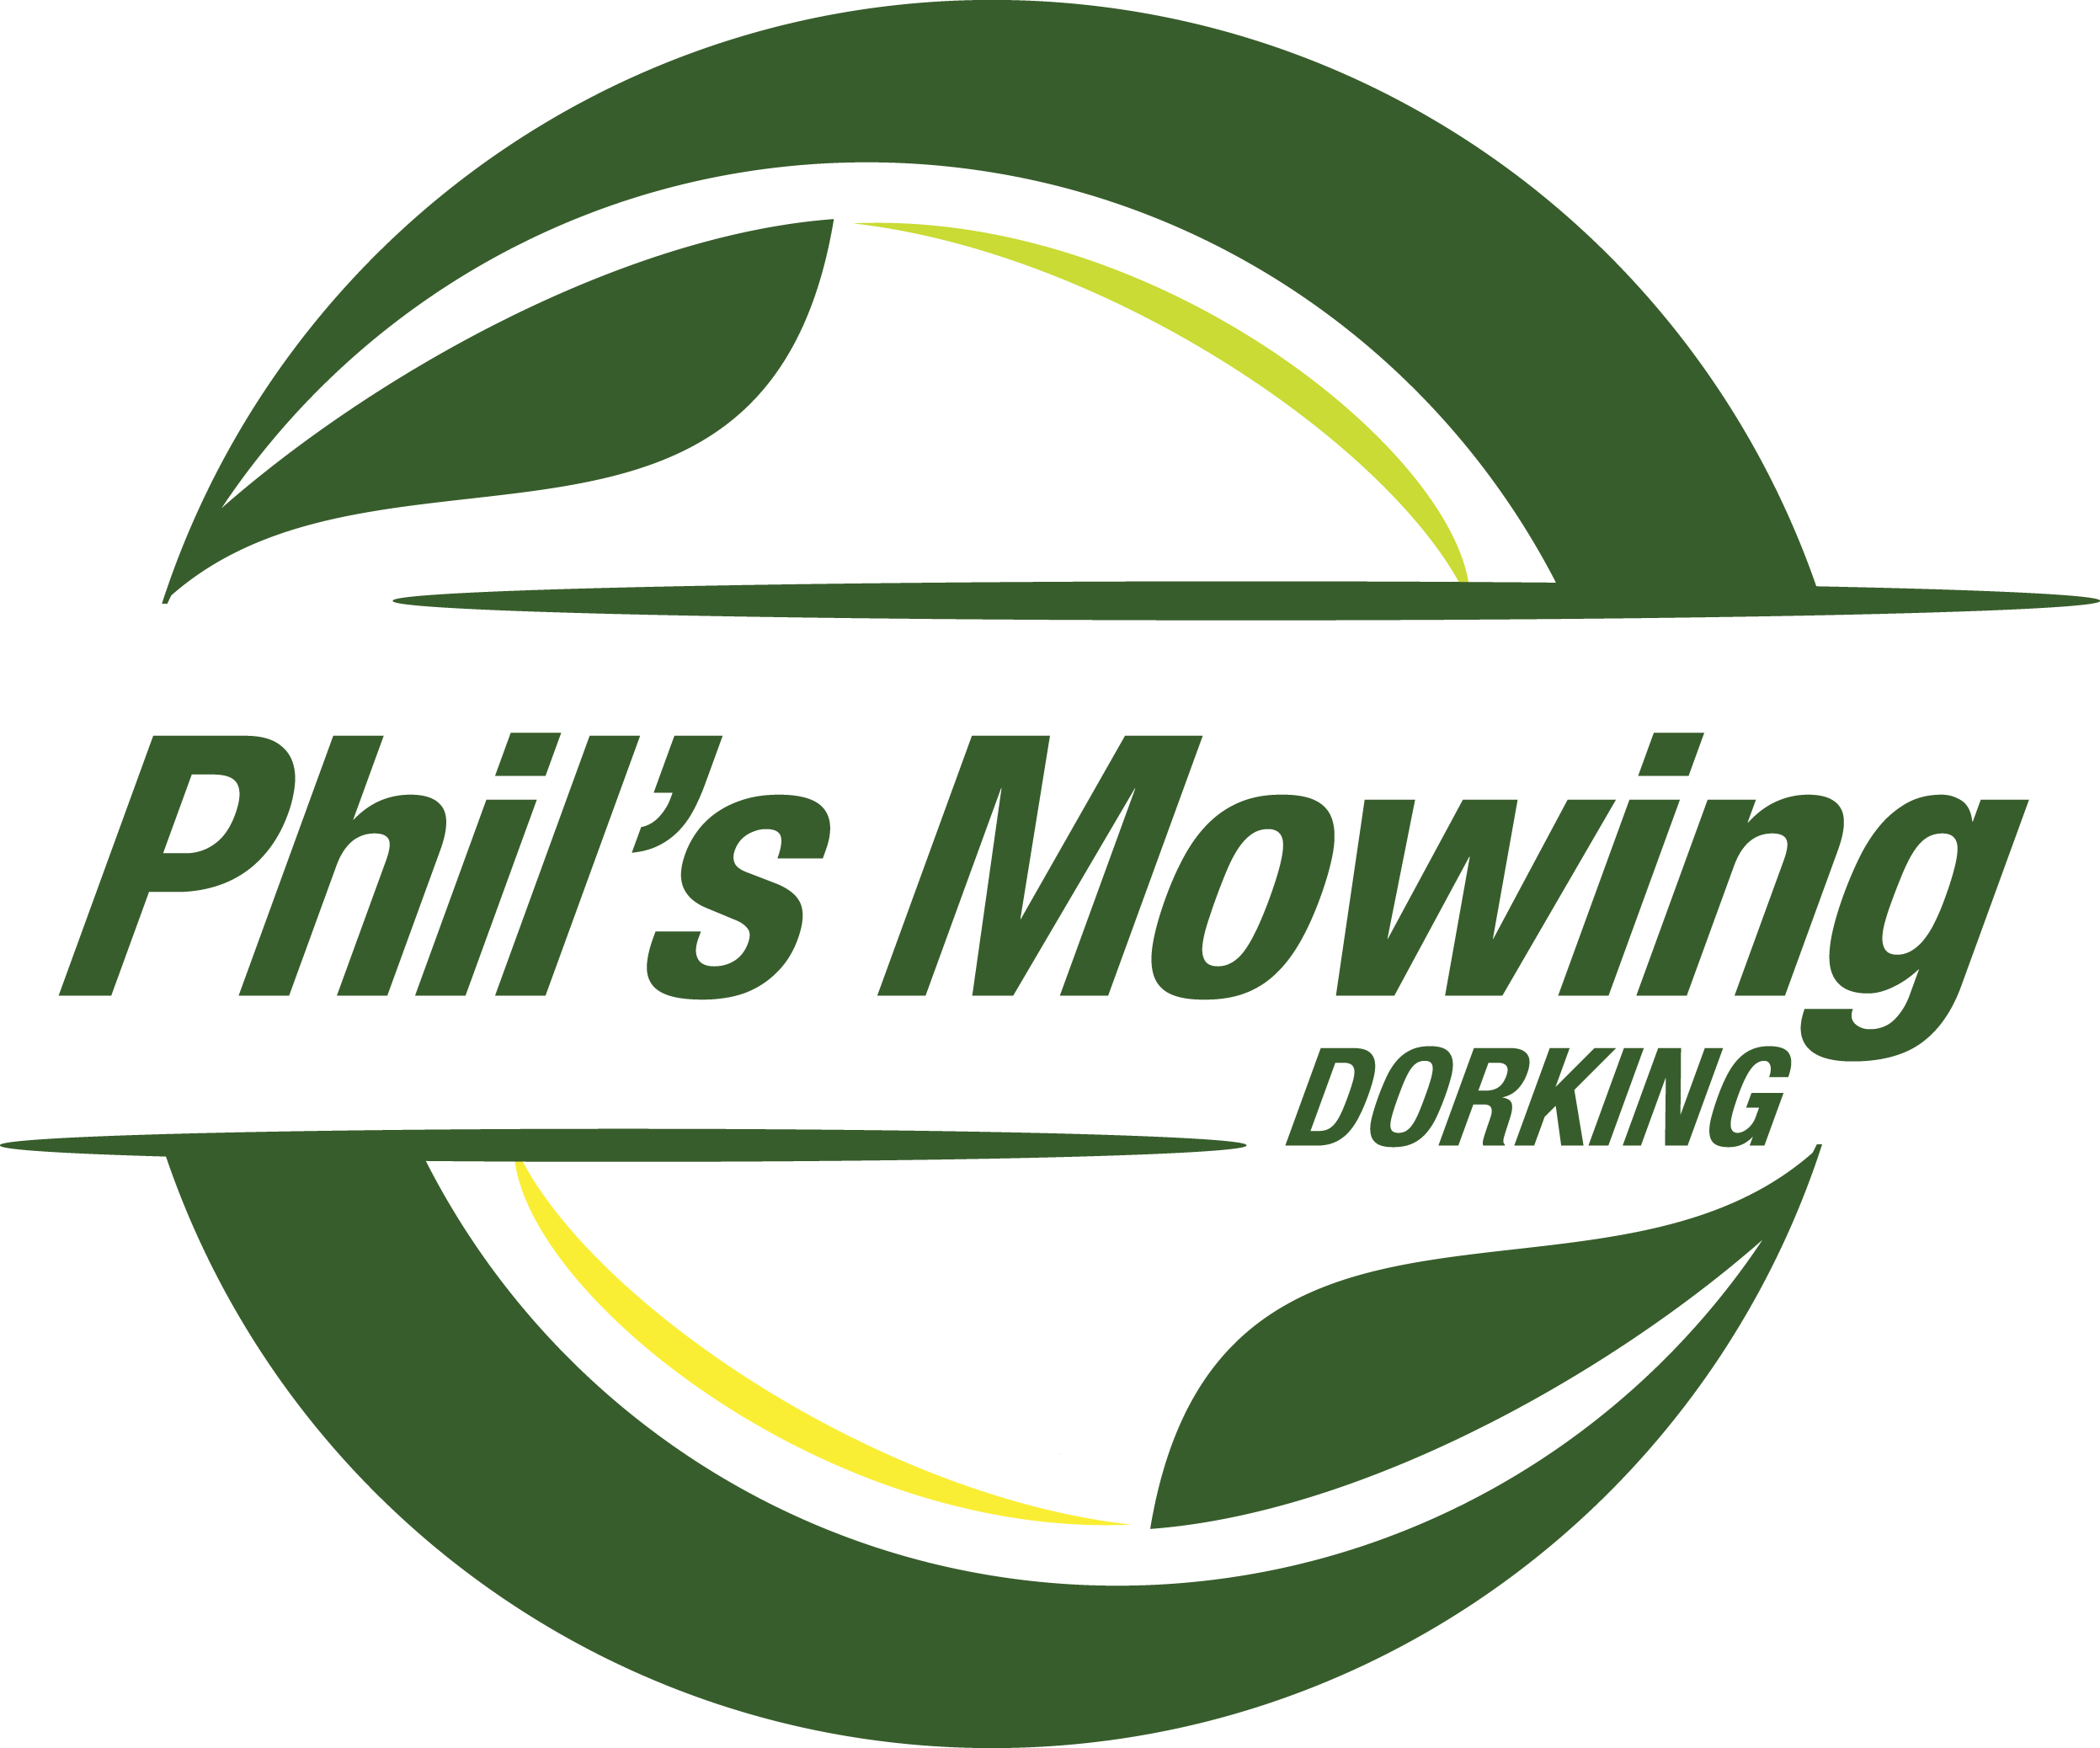 Phil's Mowing Dorking